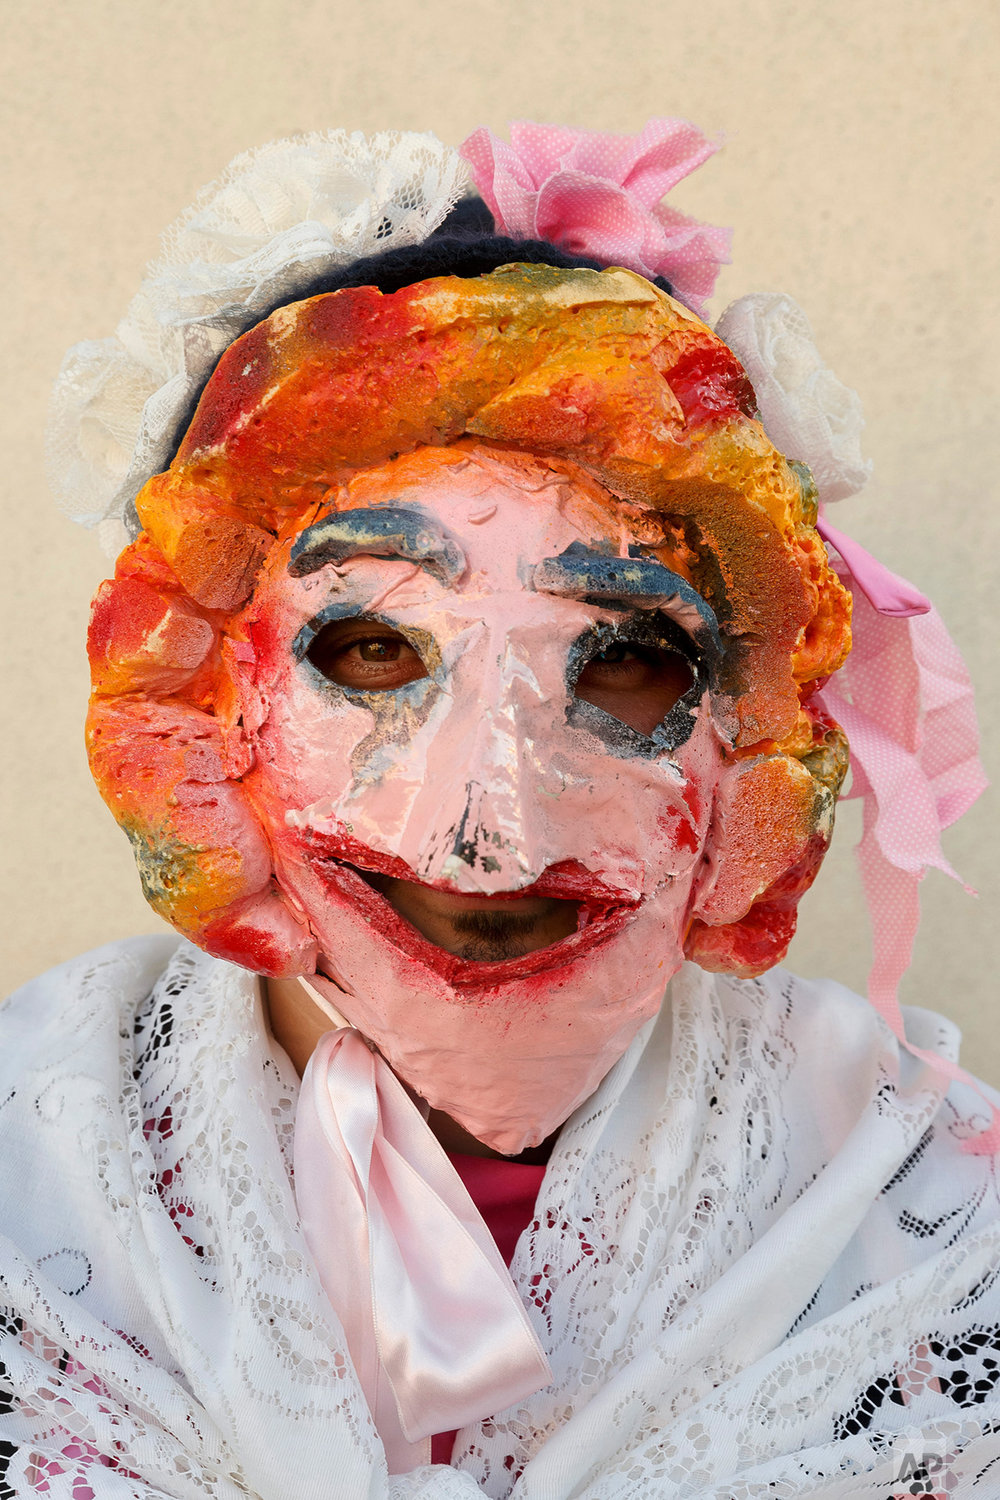 In this photo taken on Saturday, Jan. 7, 2017, a person dresses as a character from 'la Vaquilla' wearing an ancient mask poses for a photo, during a winter masquerade gathering in Salsas, Portugal.  (AP Photo/Daniel Ochoa de Olza)